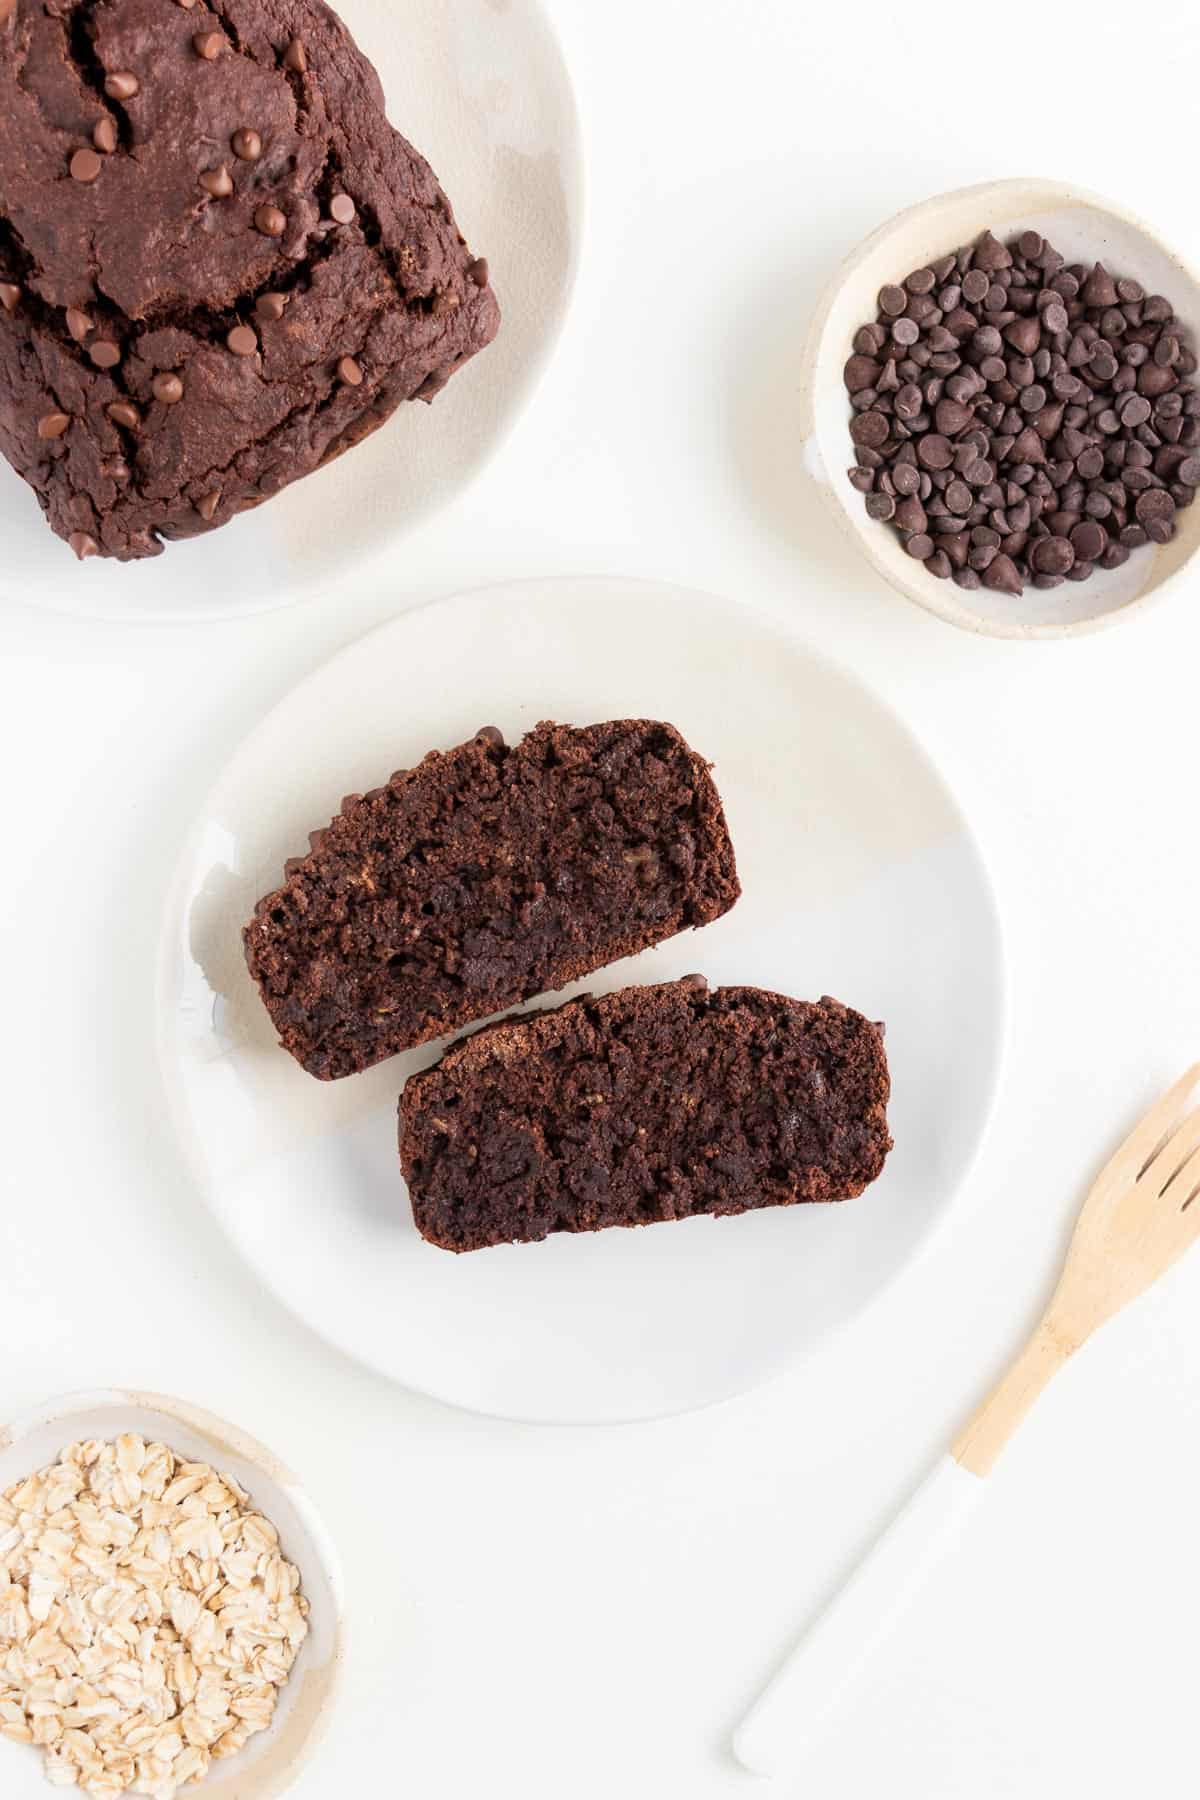 two slices of vegan gluten-free chocolate banana bread on a white plate surrounded by a small bowl of chocolate chips and a small bowl of rolled oats